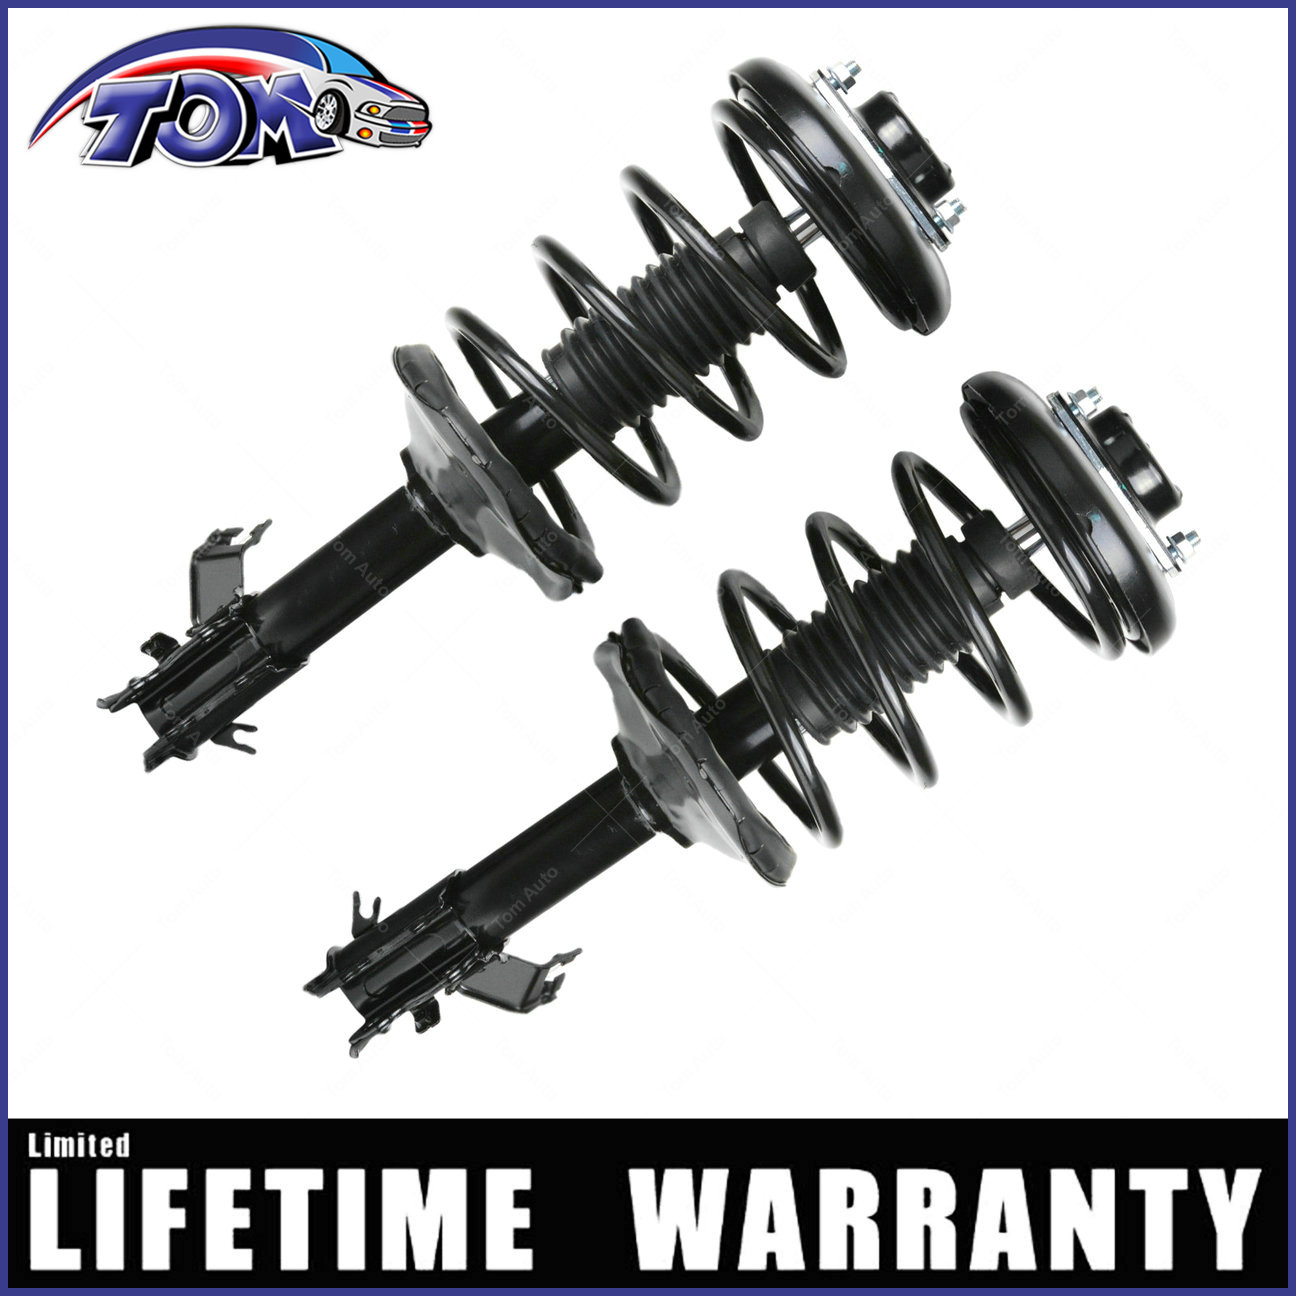 1999 2000 2001 2002 Infiniti G20 341194 71278 Shocks and Struts,ECCPP Rear Pair Shock Absorbers Strut Kits Compatible with 1995 1996 1997 1998 1999 Nissan Sentra,1995 1996 1997 1998 Nissan 200SX